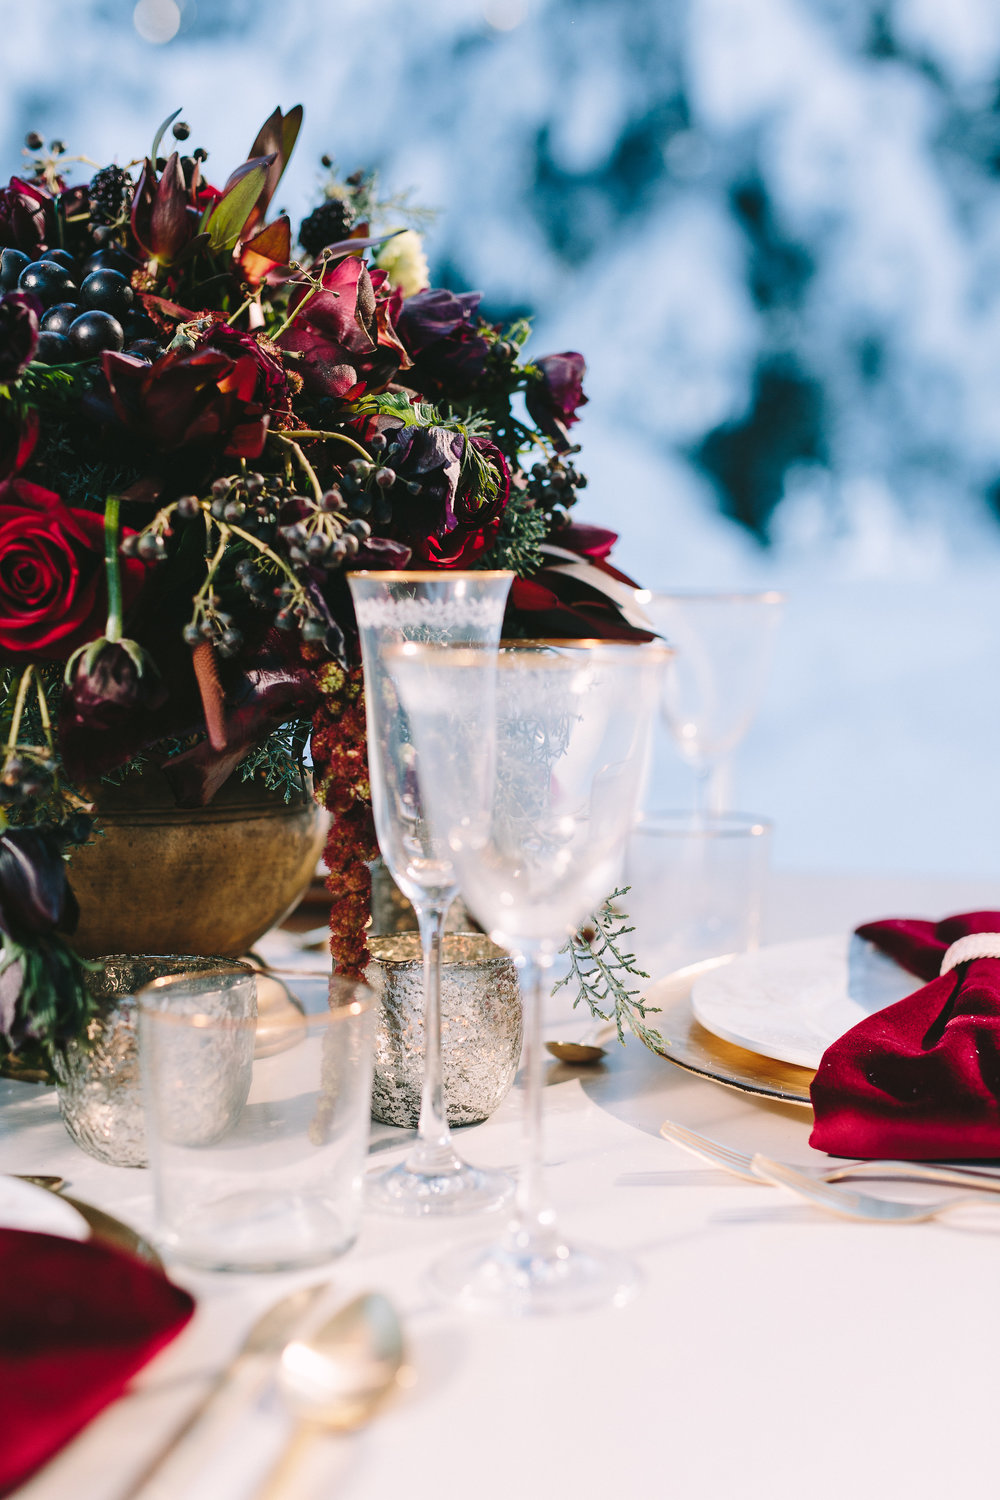 styled-shoot-winter-elatos-resort-greece-destination-wedding-table-luxury-chic-burgundy-white-gold-dinner-cutlery-